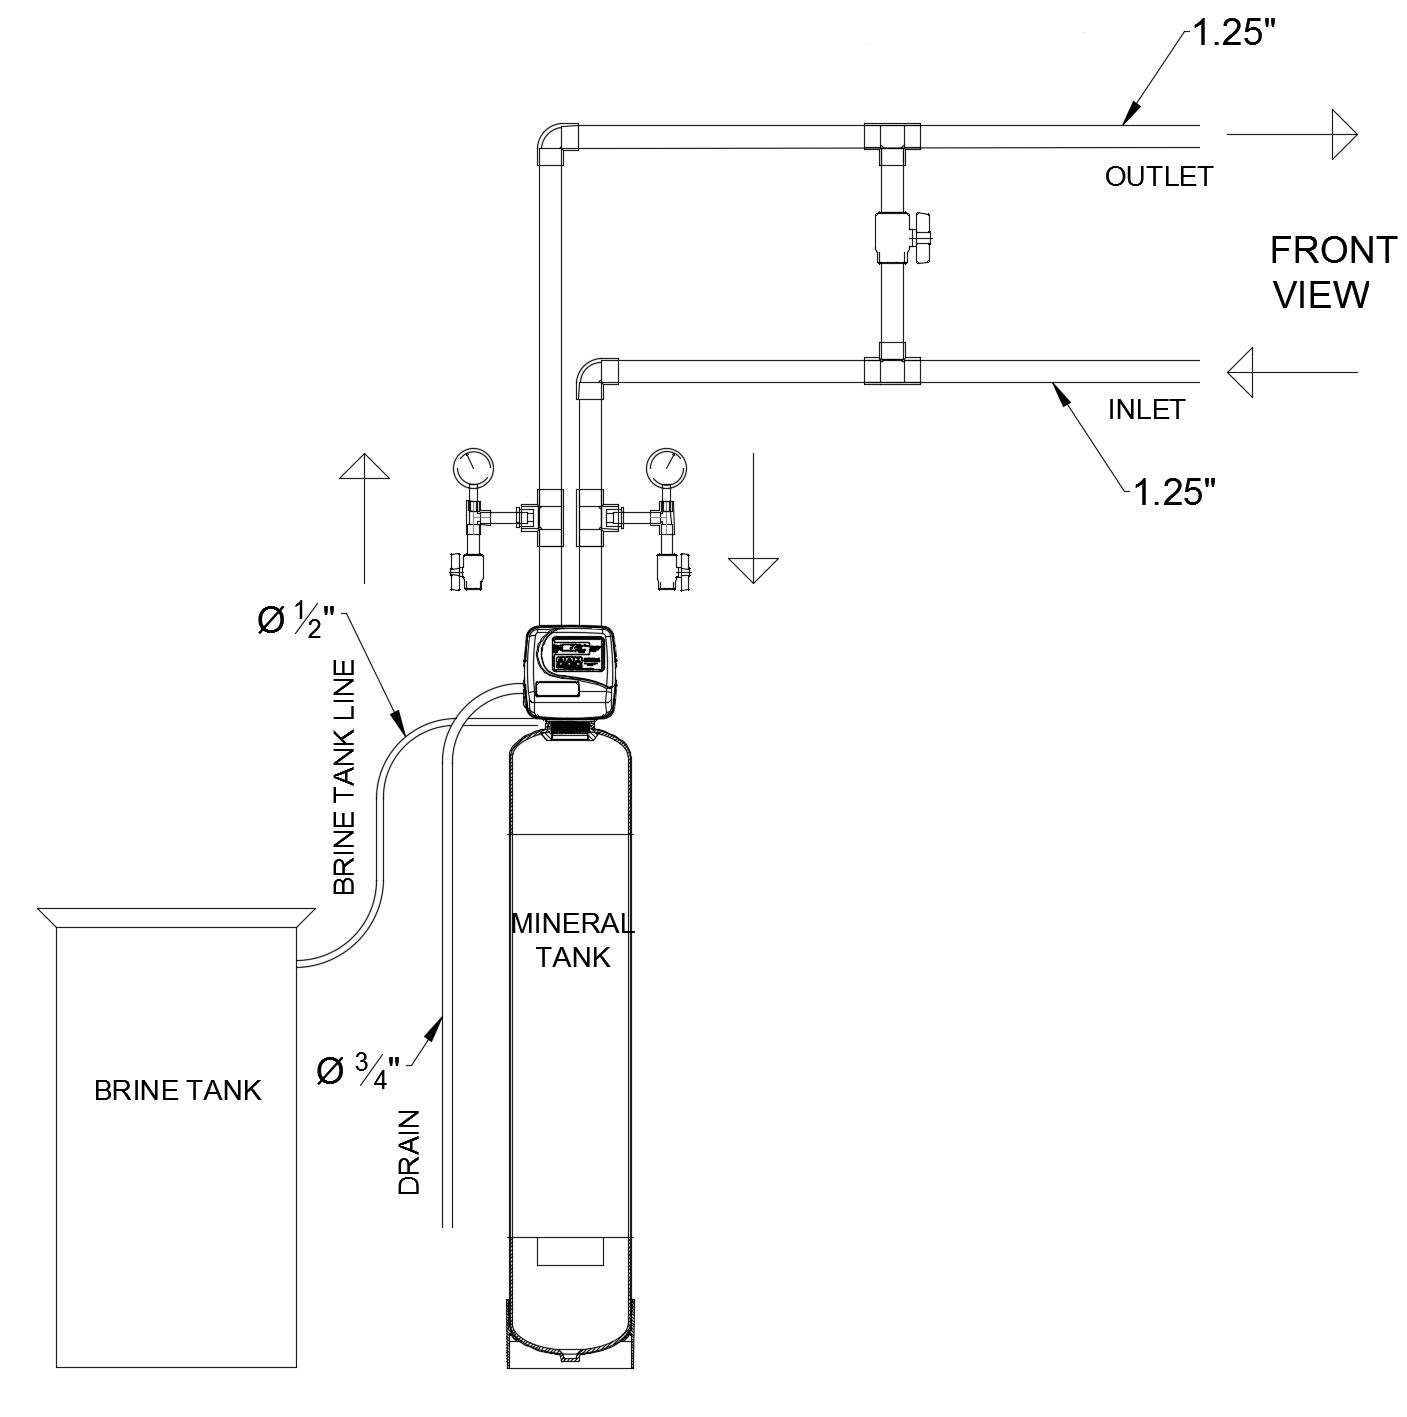 schematic drawing of ews s125n simplex commercial/industrial water softener